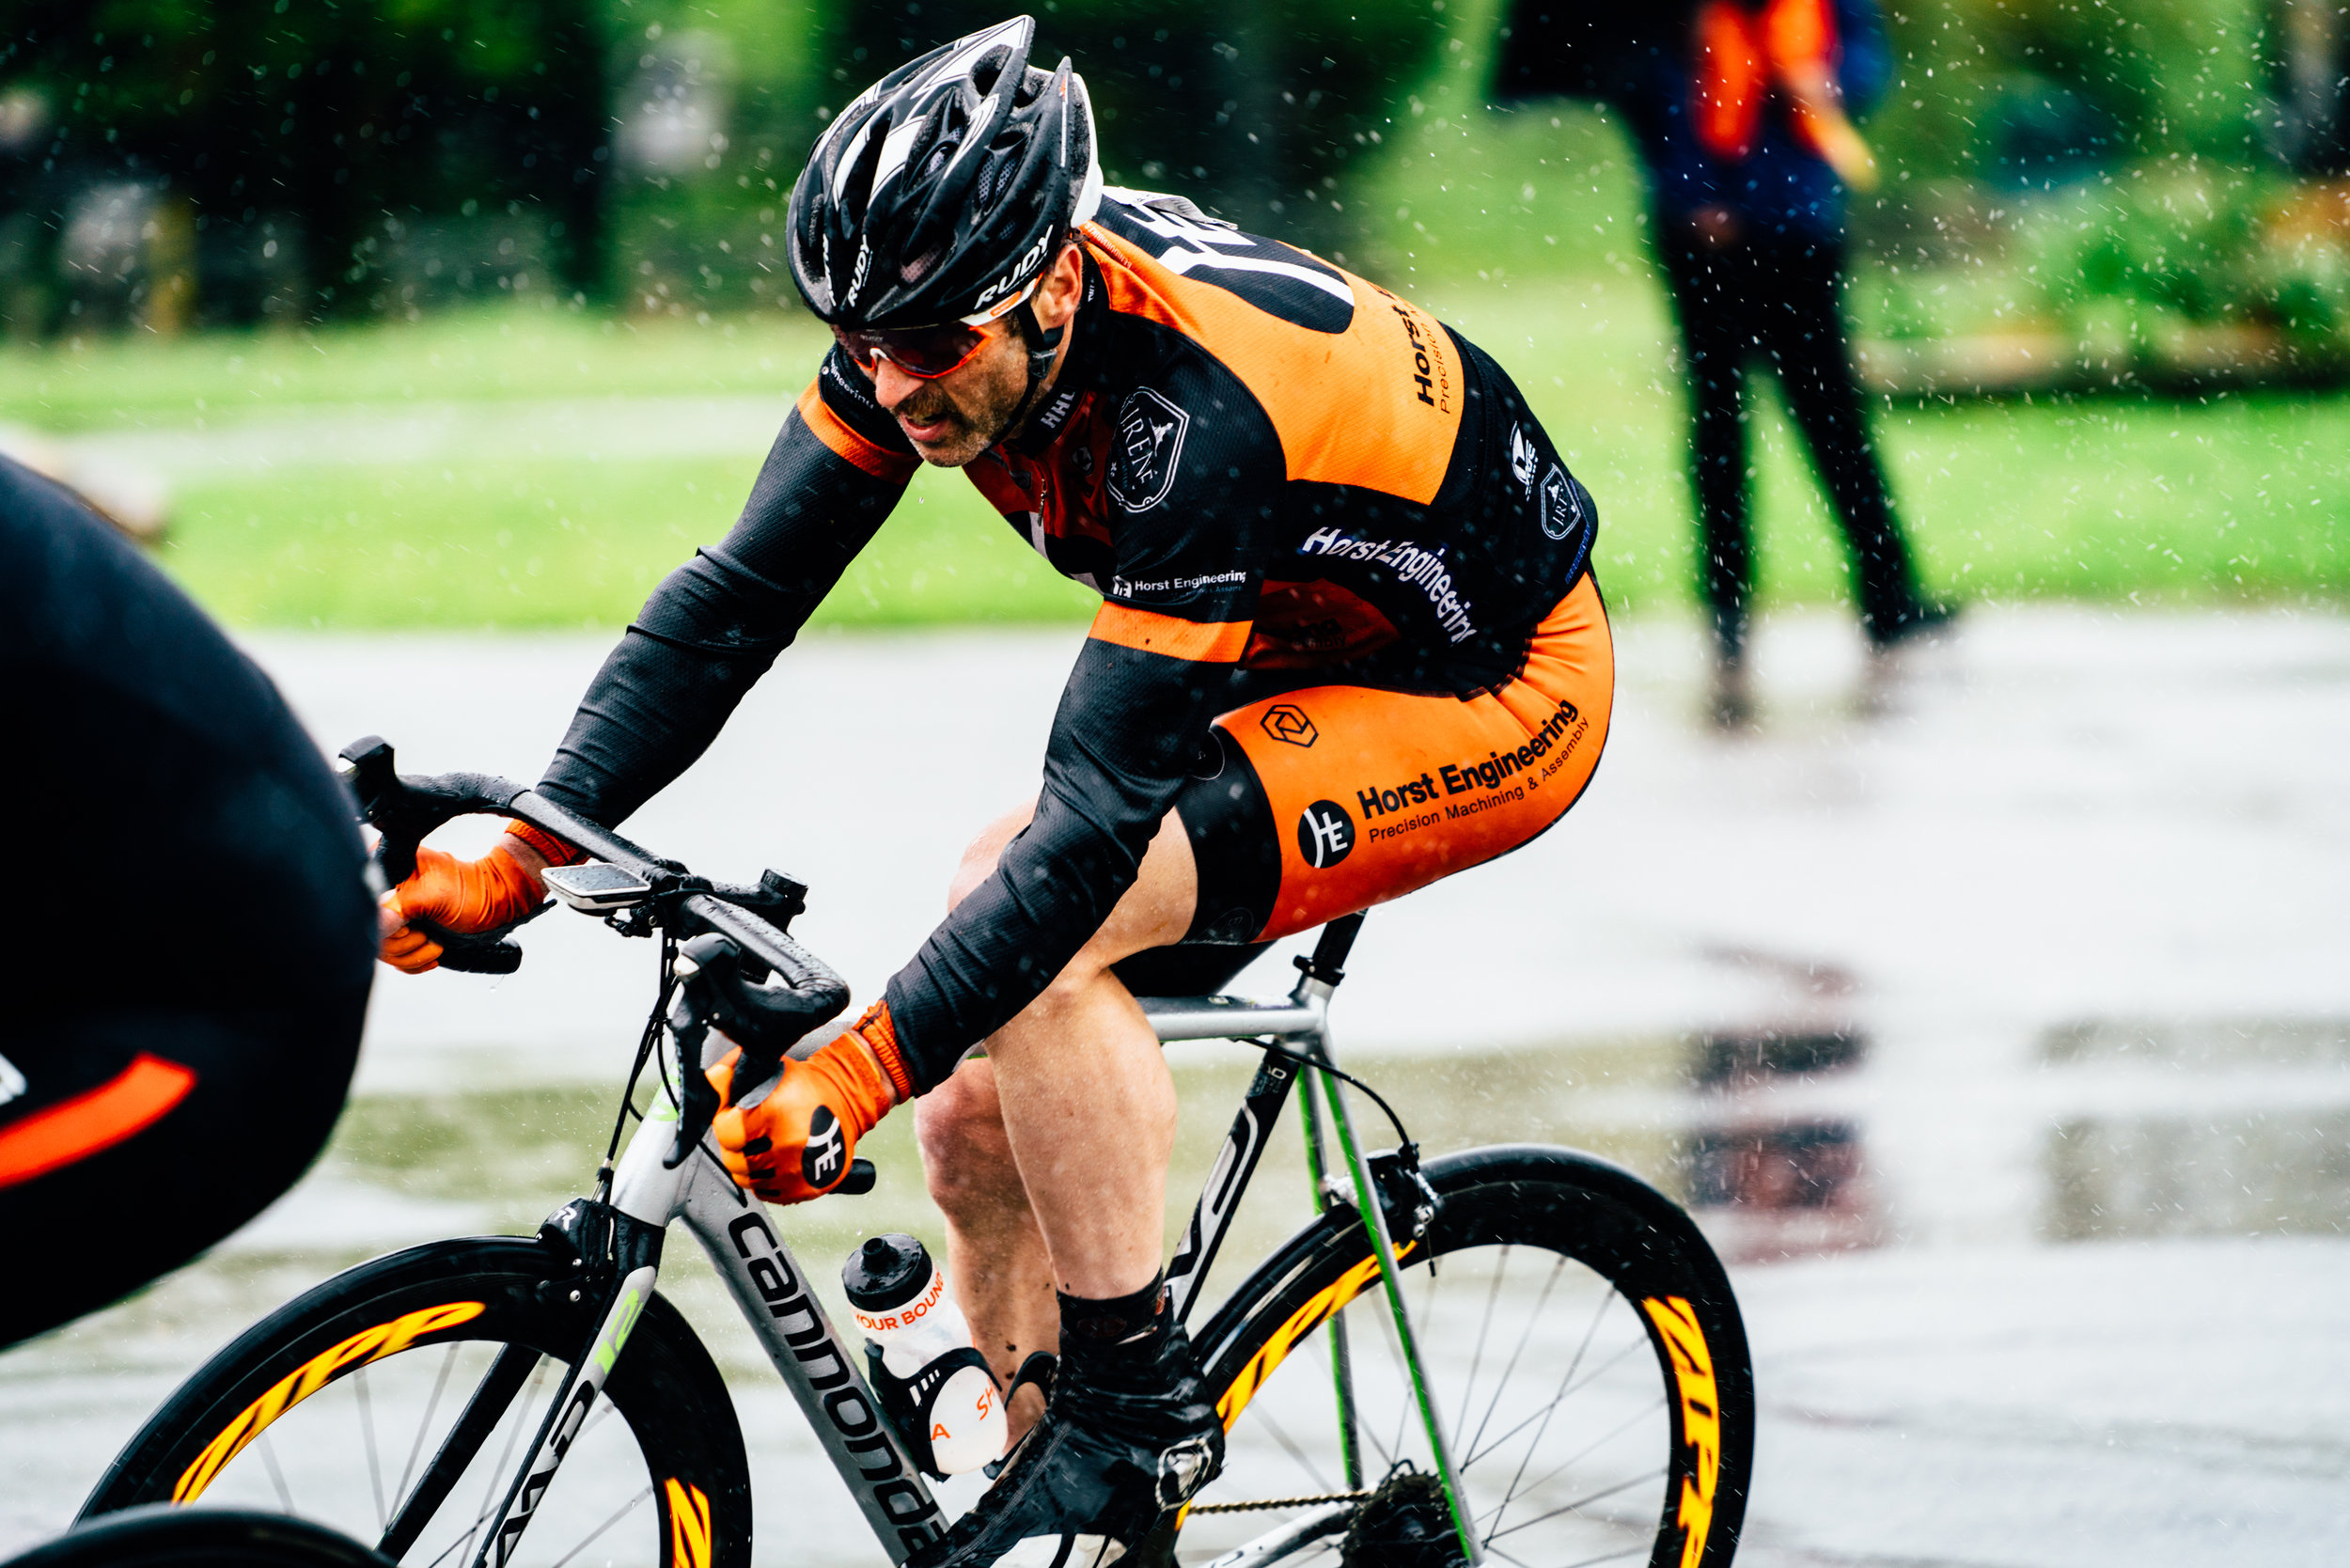 Photo Rhetoric - To Be Determined - Zach Koop Memorial Crit at Orchard Bearch-3007.jpg